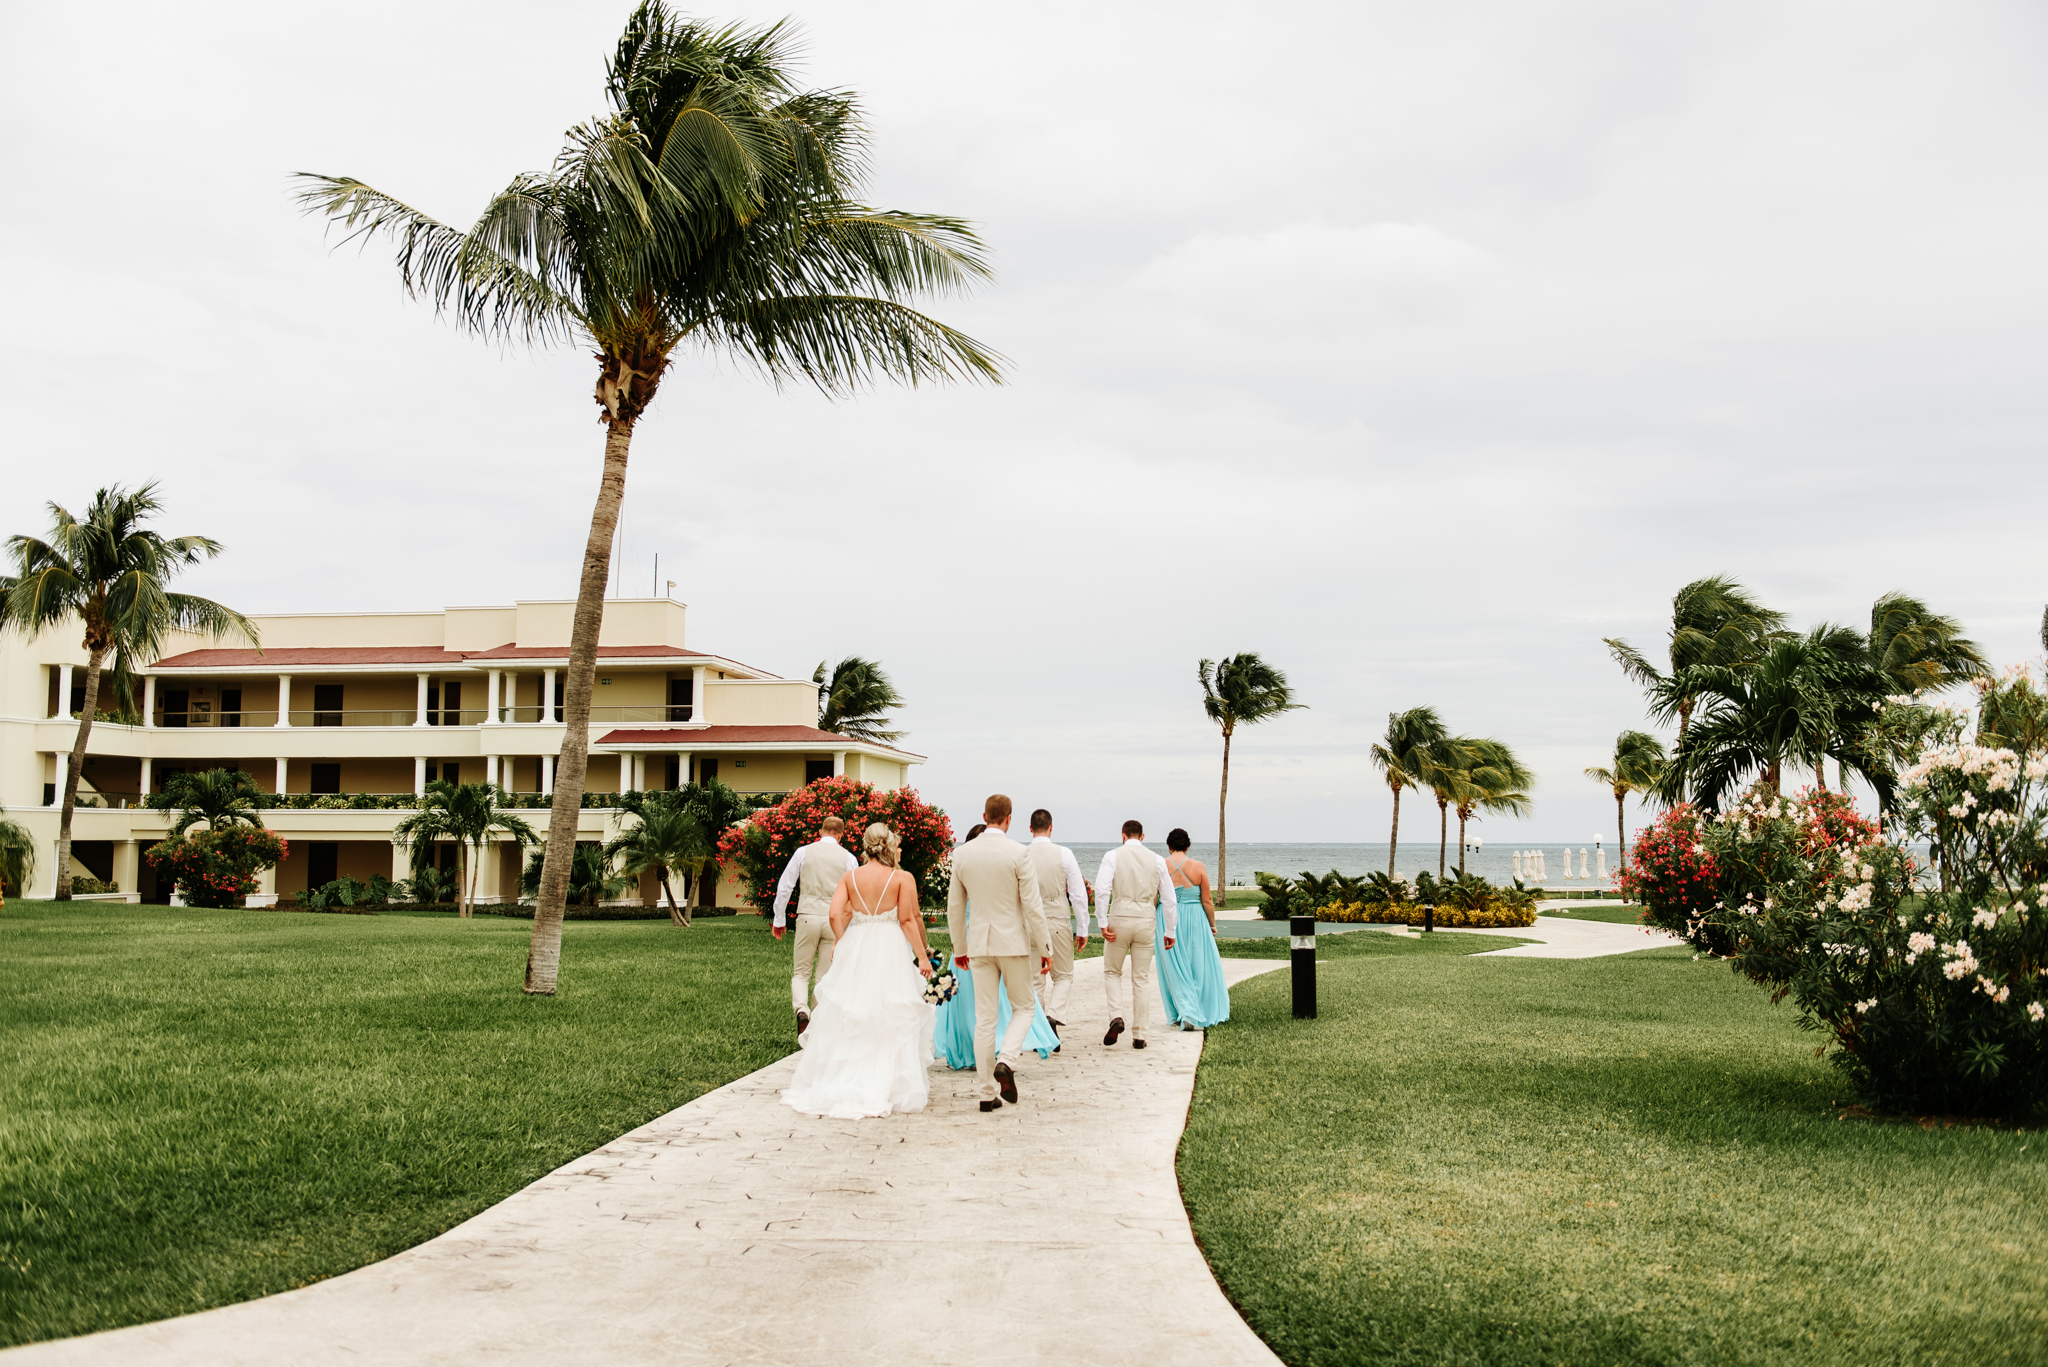 love-and-be-loved-photography-destination-wedding-photographer-cancun-mexico-jessica-jon-image-picture-photo-116.jpg